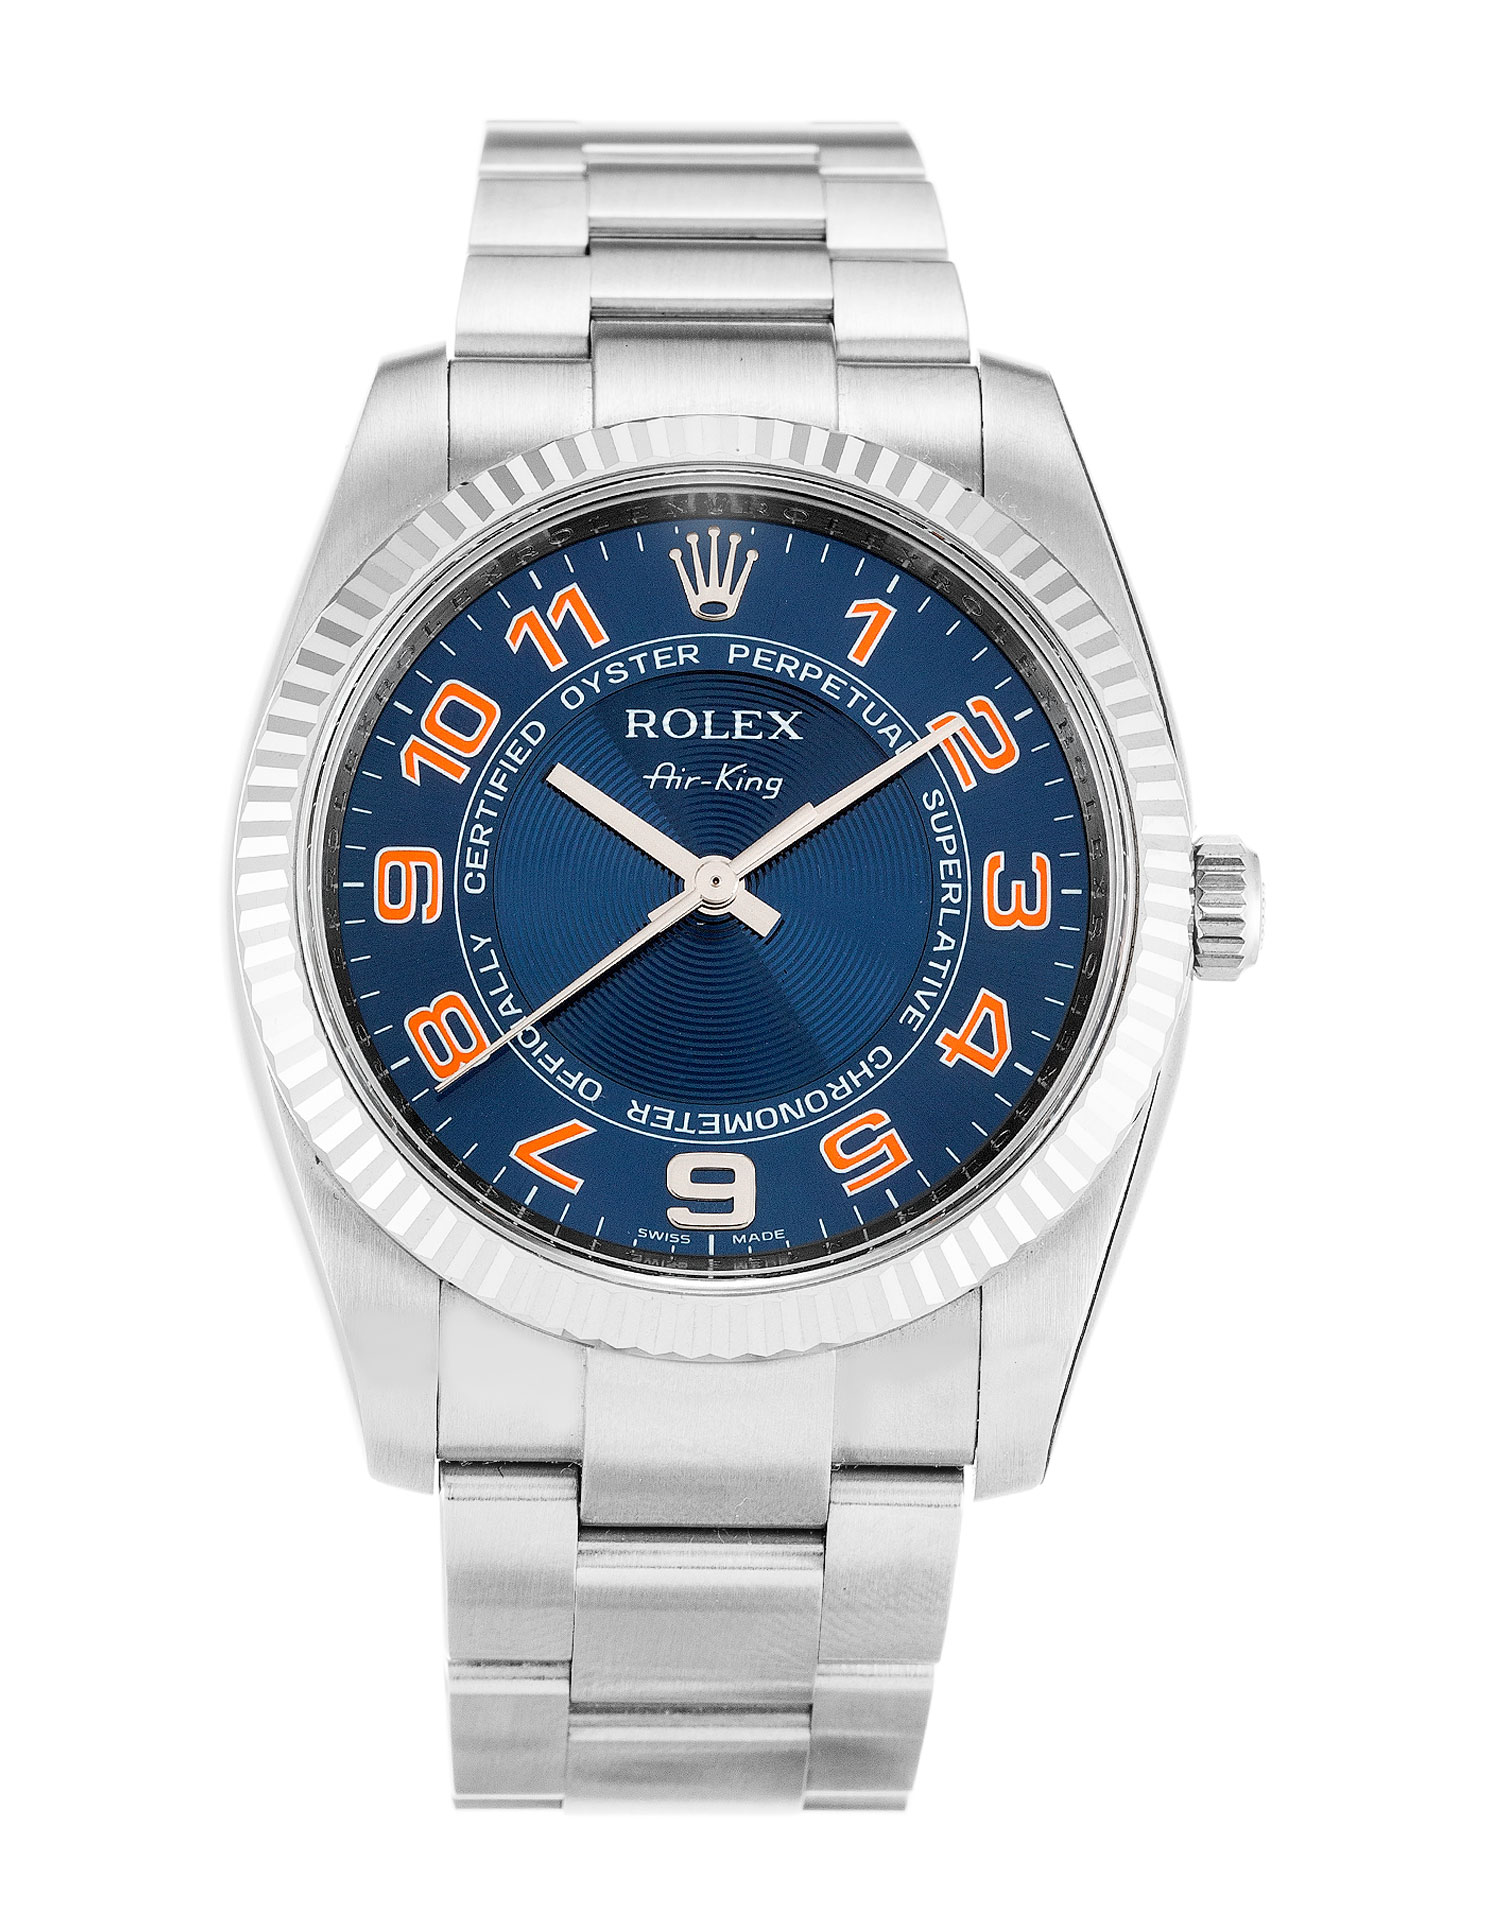 Rolex Air-king 114234 Unisex 34 Mm Steel & White Gold Case Automatic Movement – iapac.to